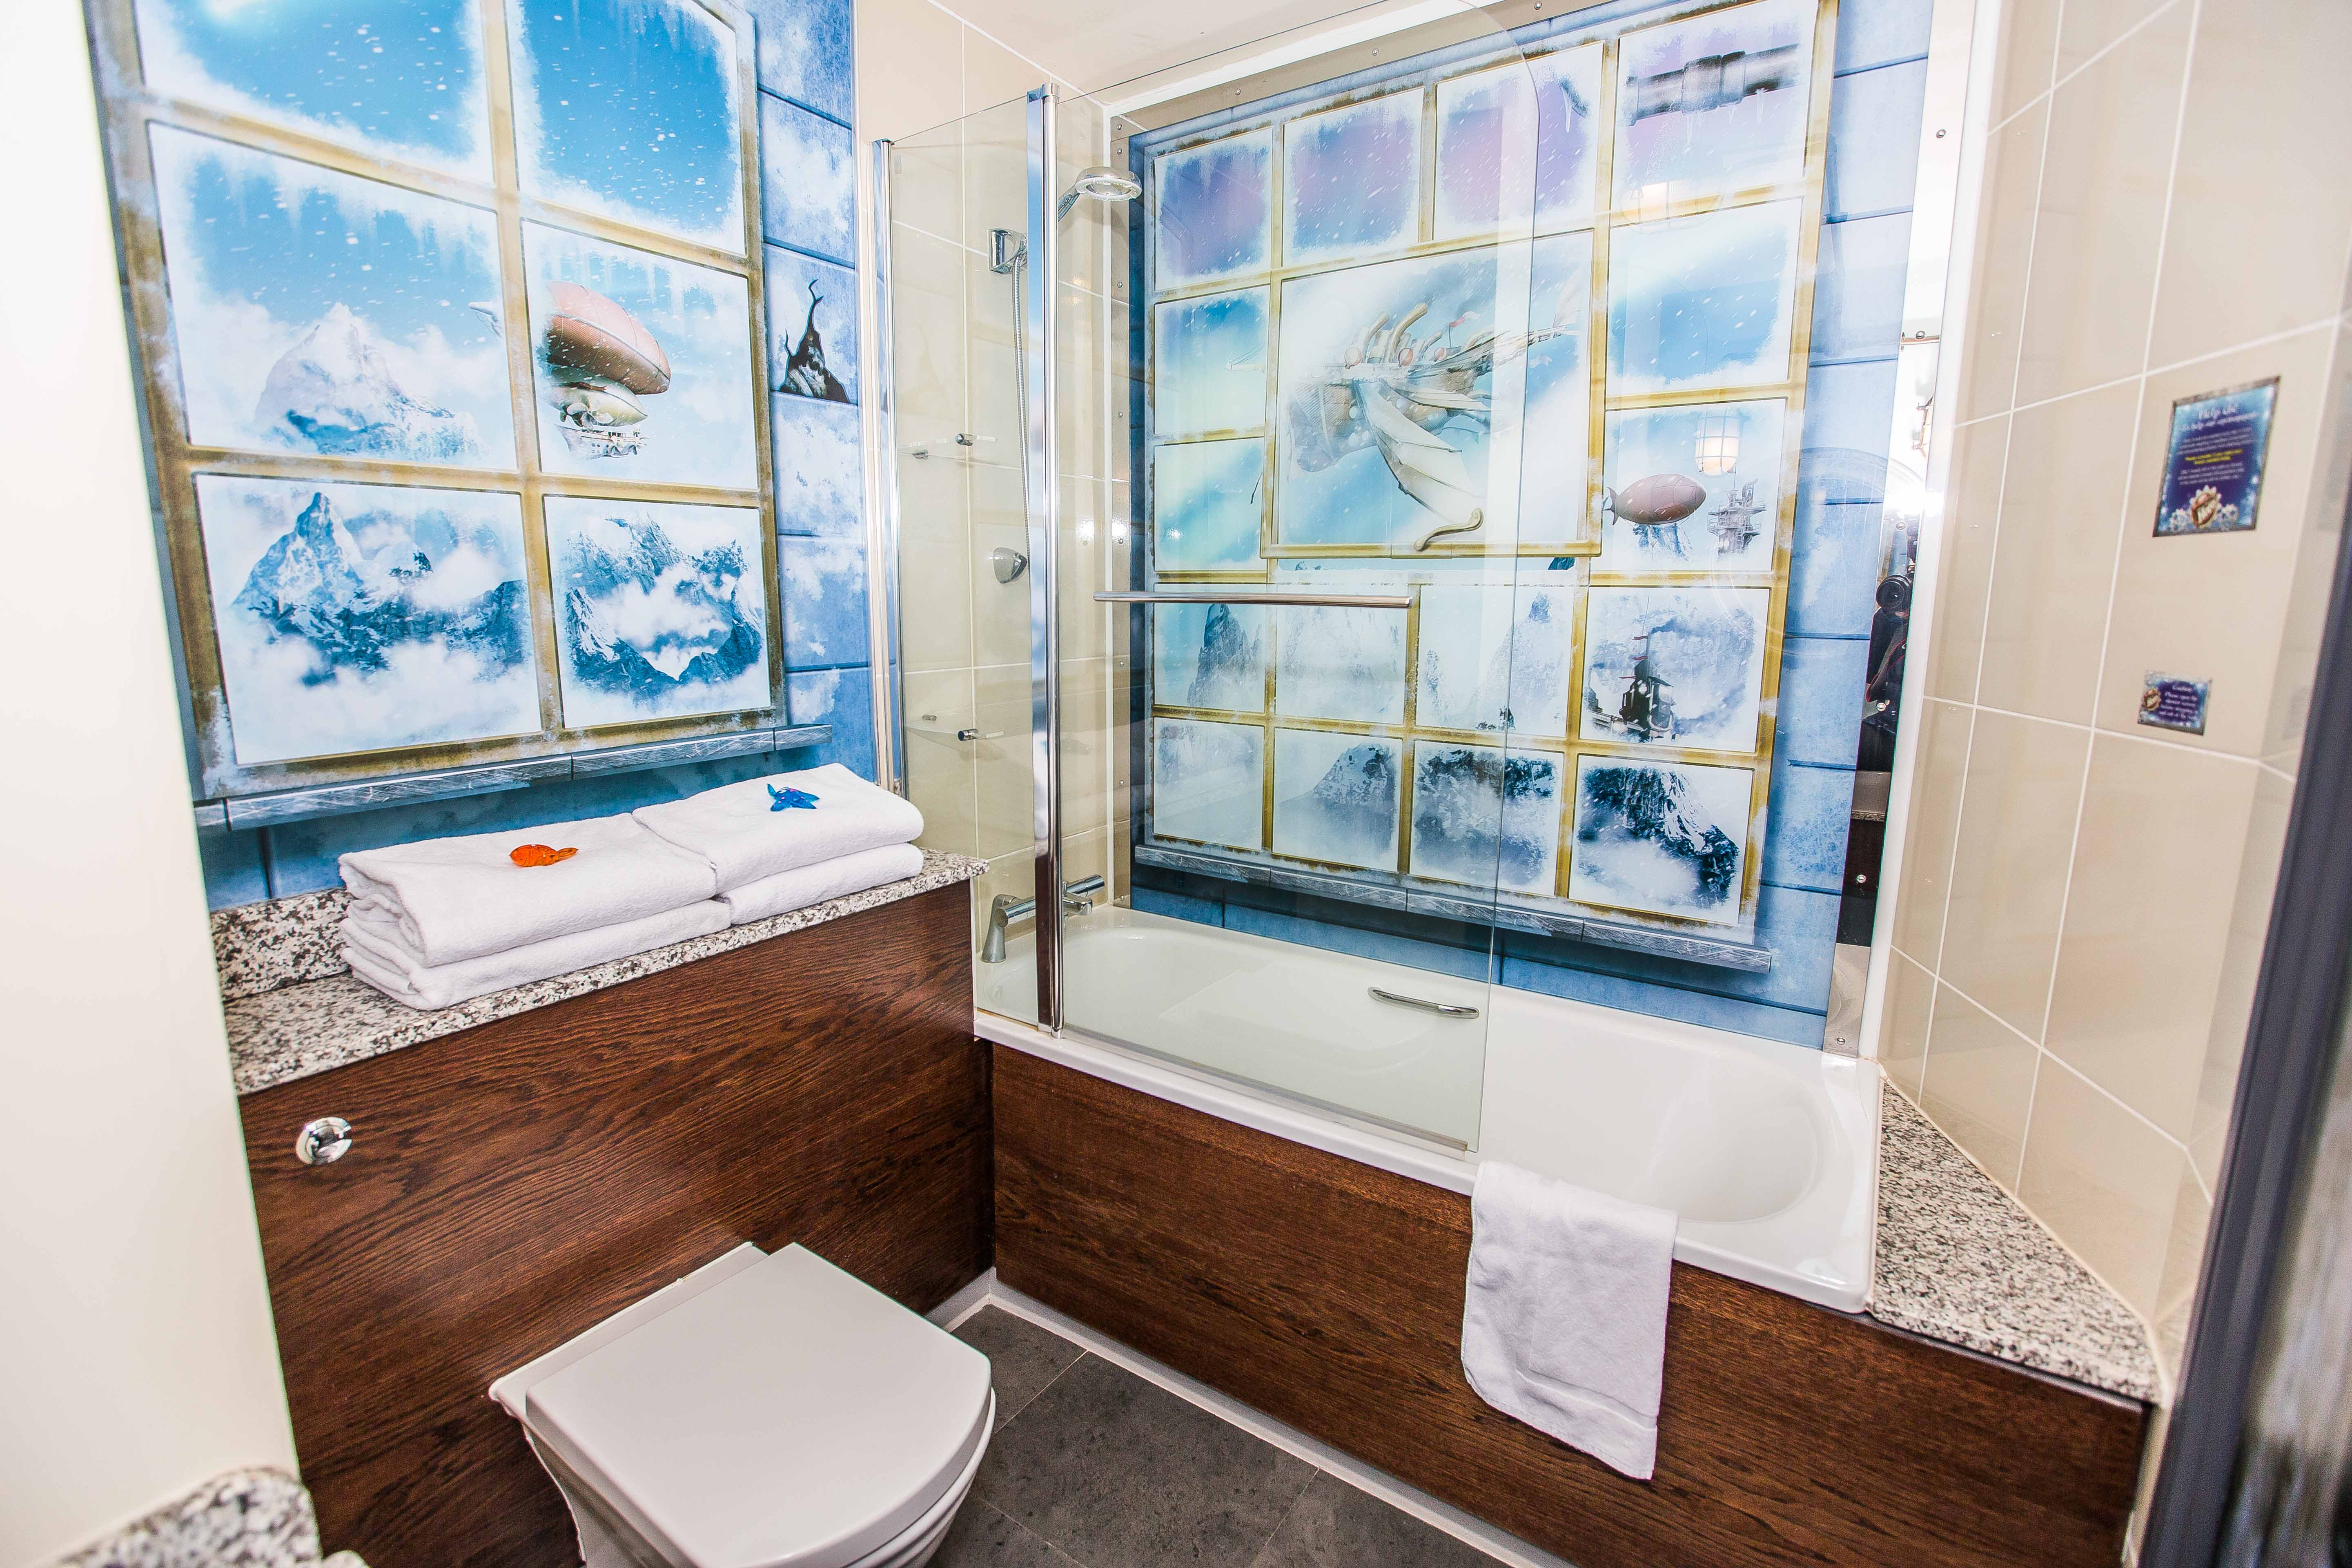 The bathroom in the Arctic Explorer Rooms